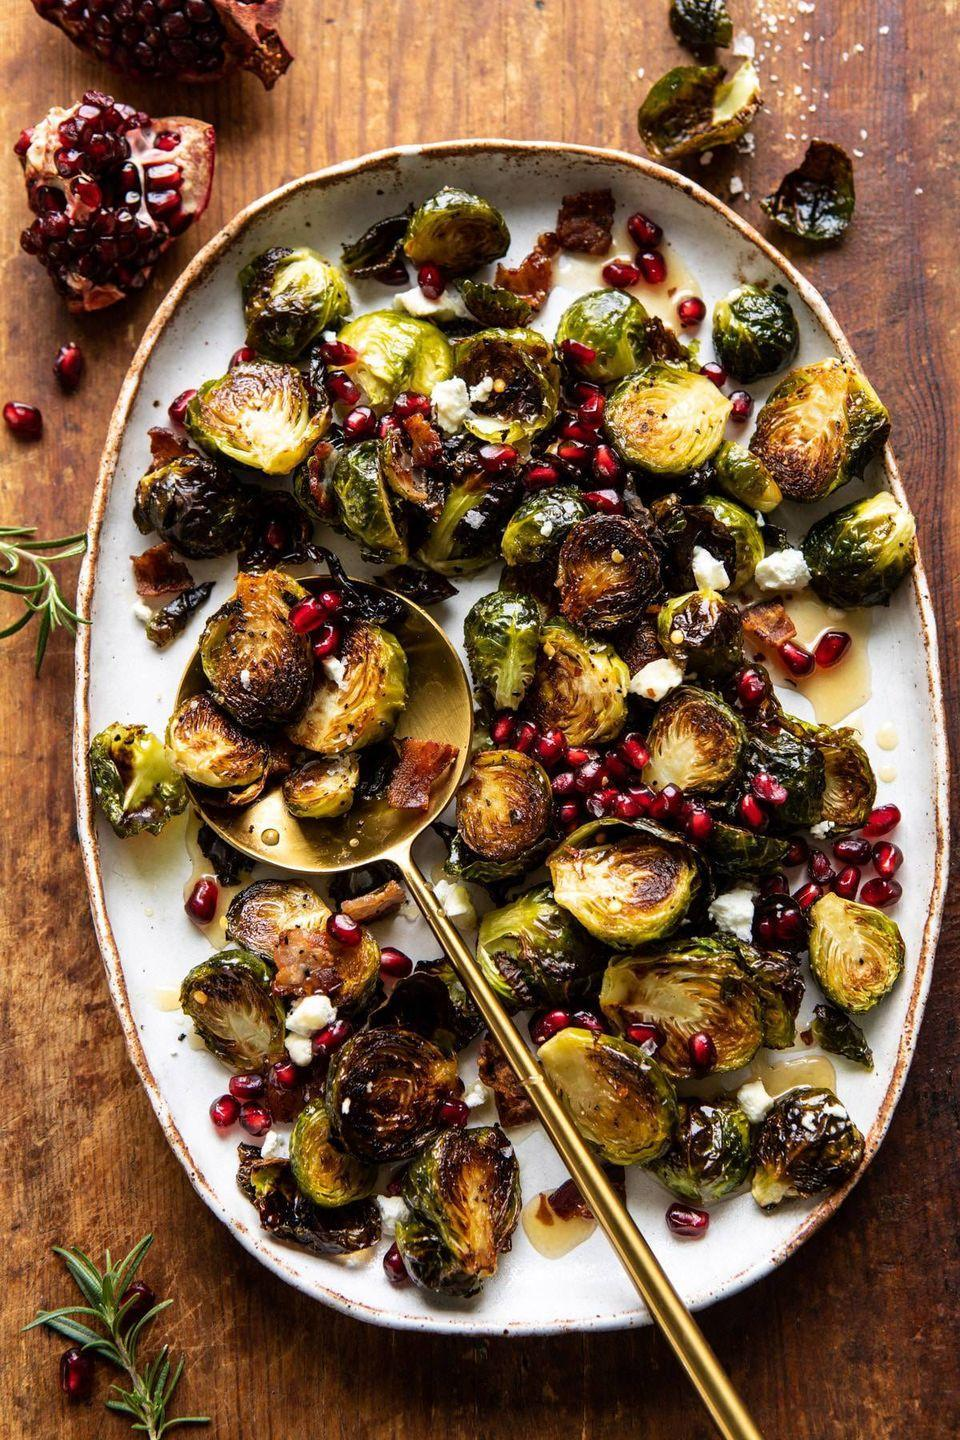 """<p>A sweet and tangy vinaigrette, salty bacon, and creamy goat cheese team up for a side that will send everyone back for seconds. The pomegranate seed topping is <em>almost</em> too pretty to eat. </p><p><strong>Get the recipe from <a href=""""https://www.halfbakedharvest.com/roasted-bacon-brussels-sprouts/"""" rel=""""nofollow noopener"""" target=""""_blank"""" data-ylk=""""slk:Half-Baked Harvest"""" class=""""link rapid-noclick-resp"""">Half-Baked Harvest</a>.</strong></p>"""